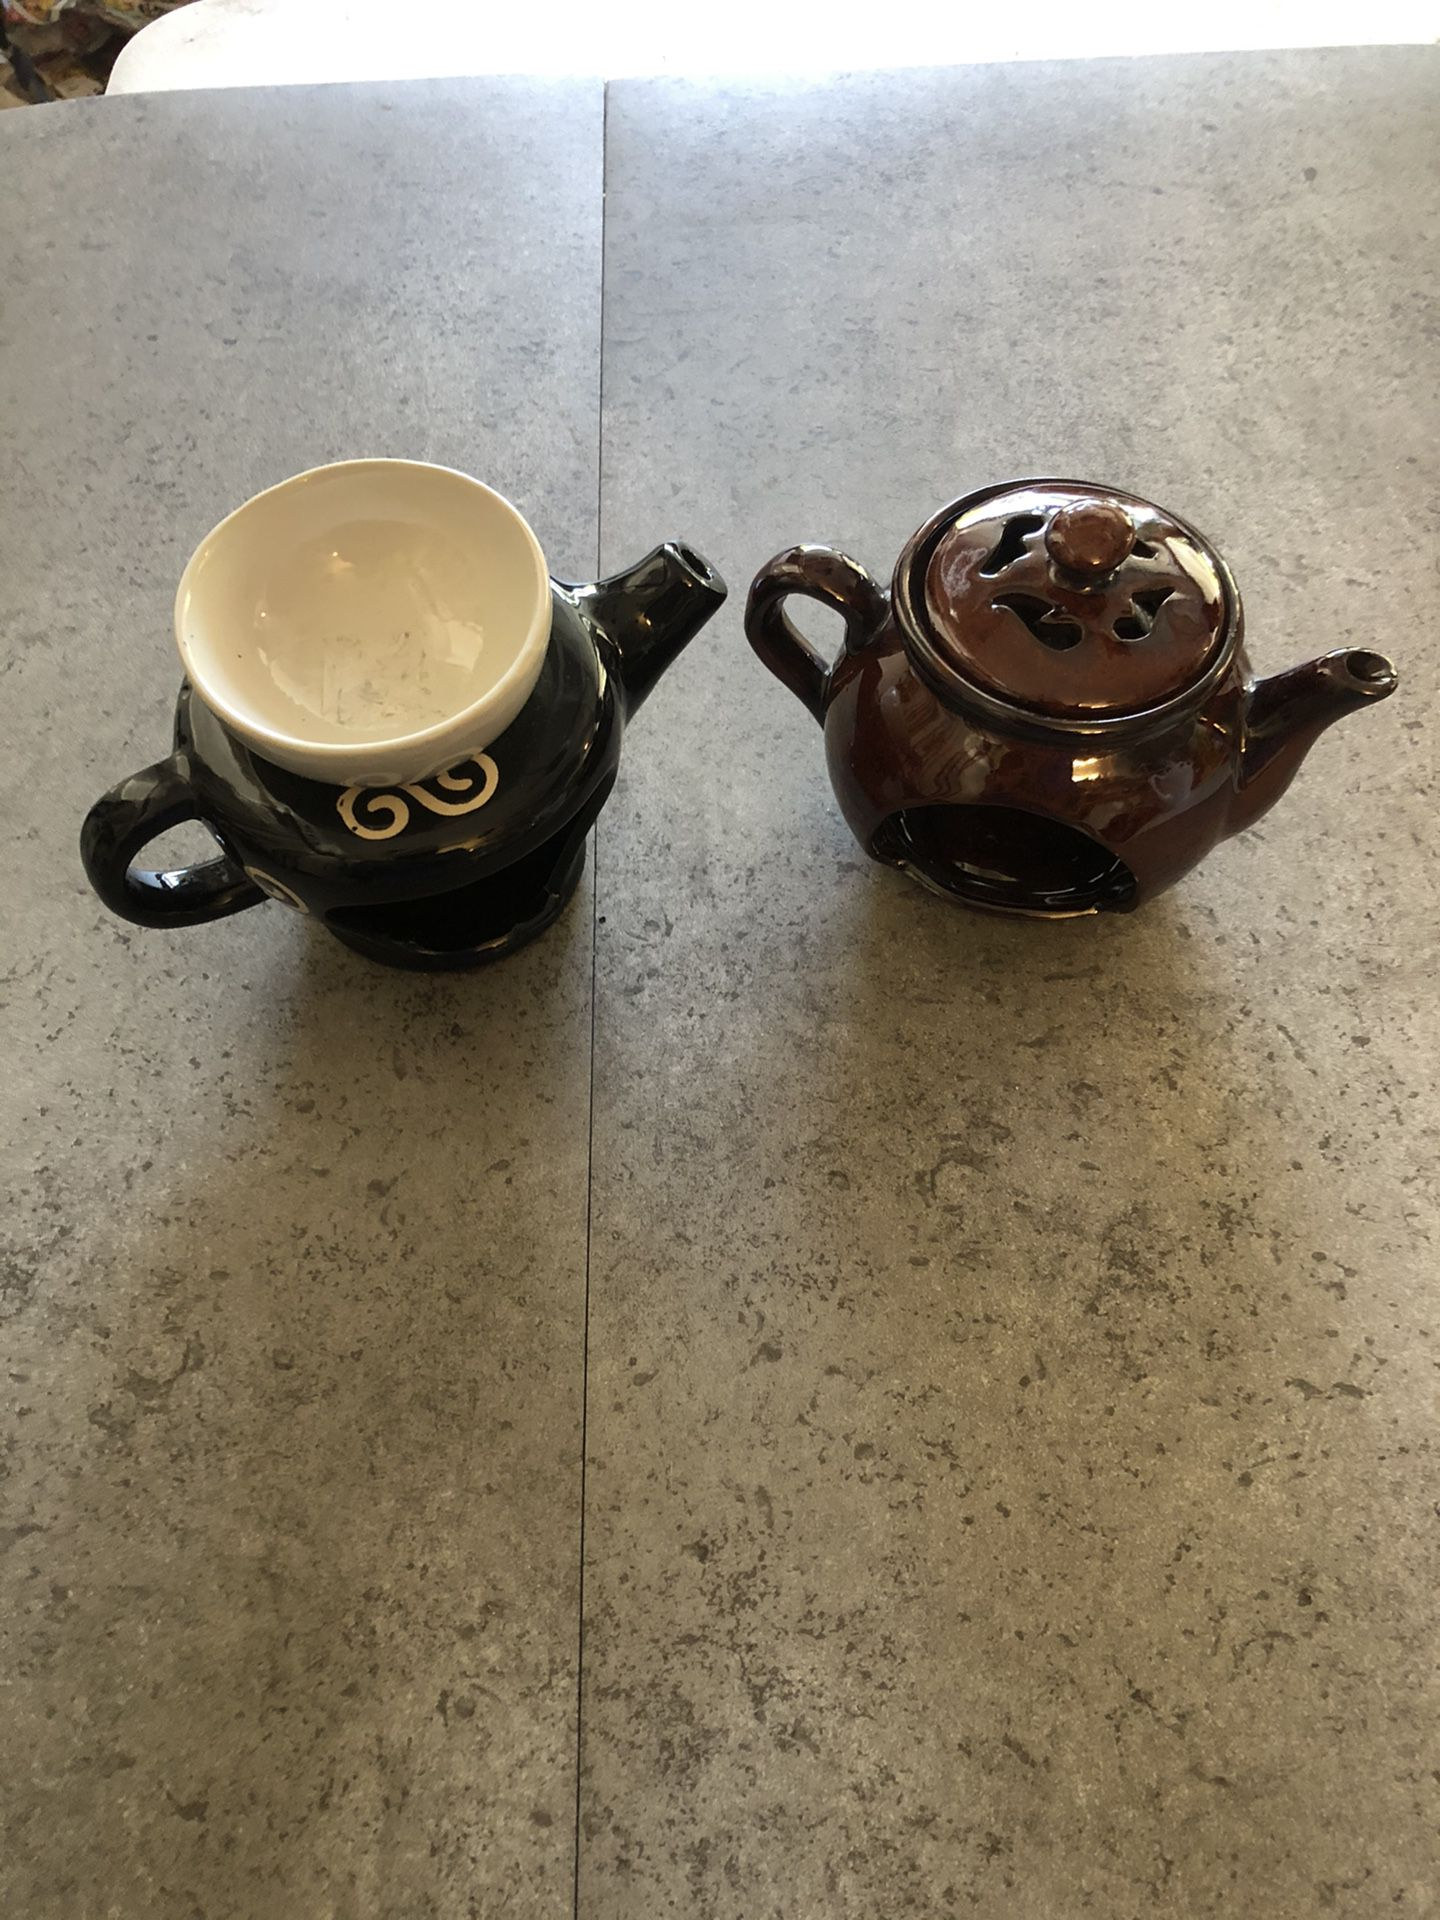 Incense and oil burners